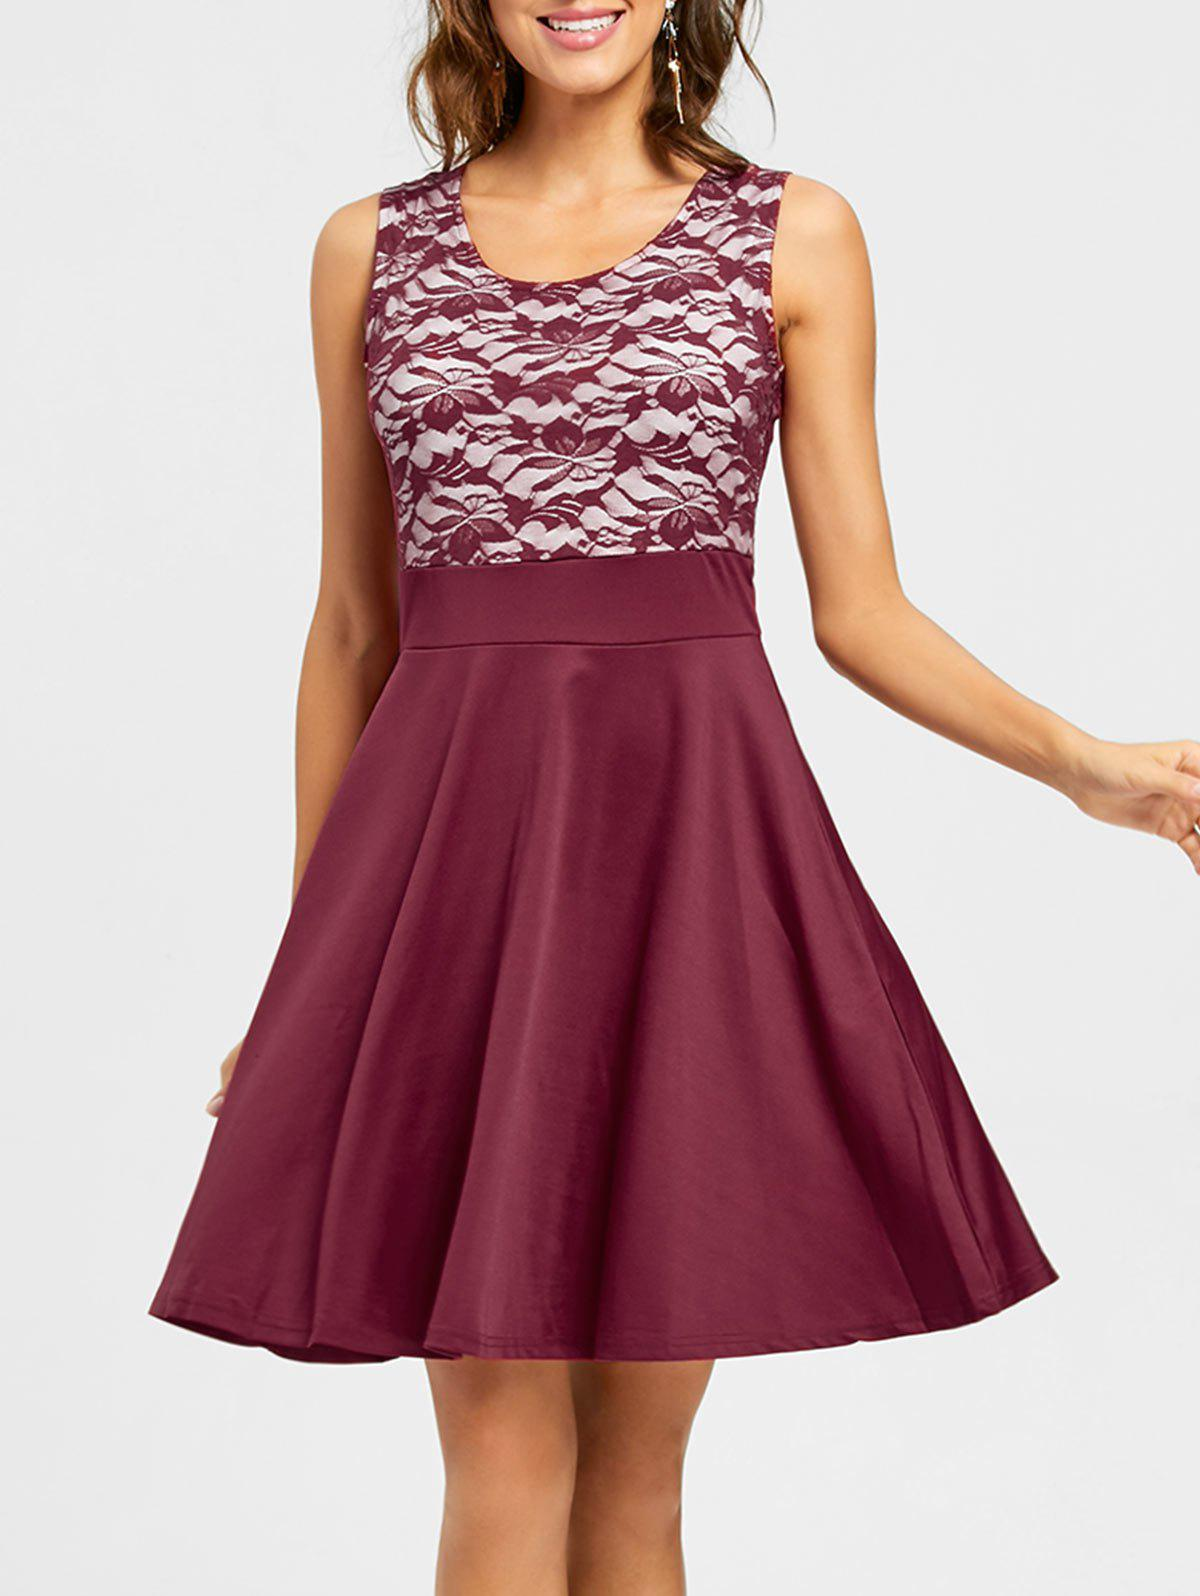 Sleeveless Floral Lace Panel Fit and Flare Dress - WINE RED S